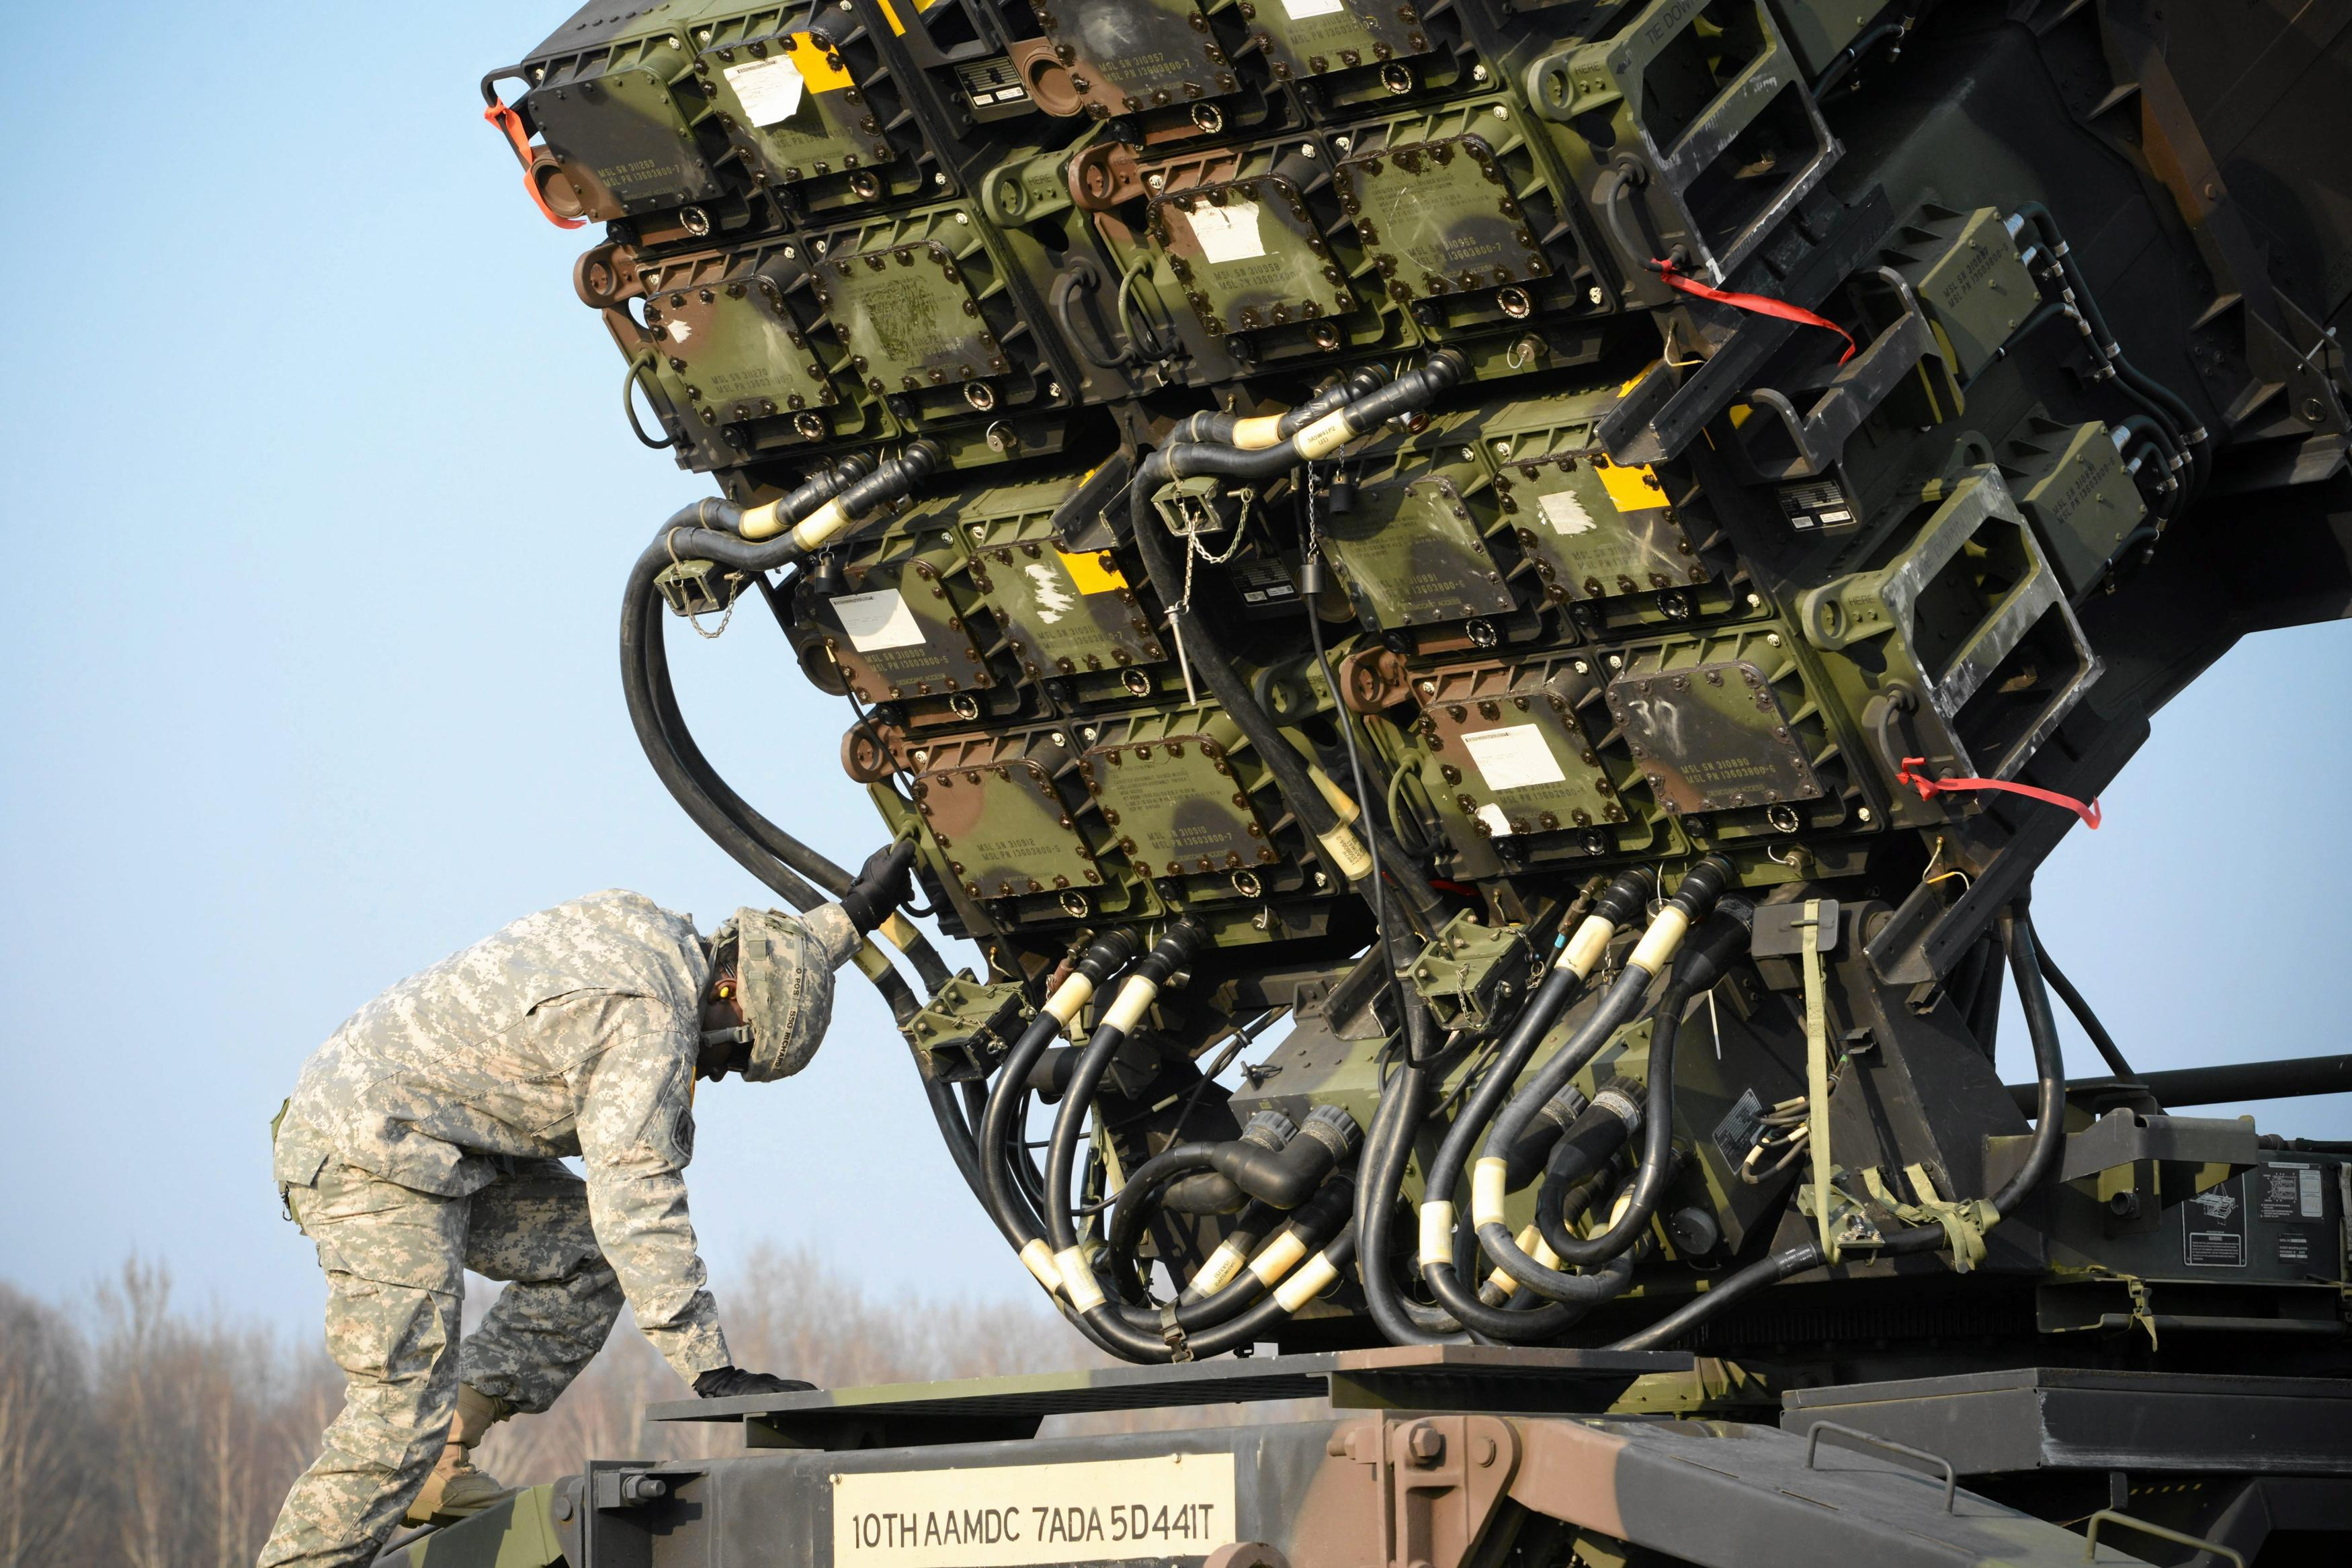 A U.S. soldier inspects a patriot missile system